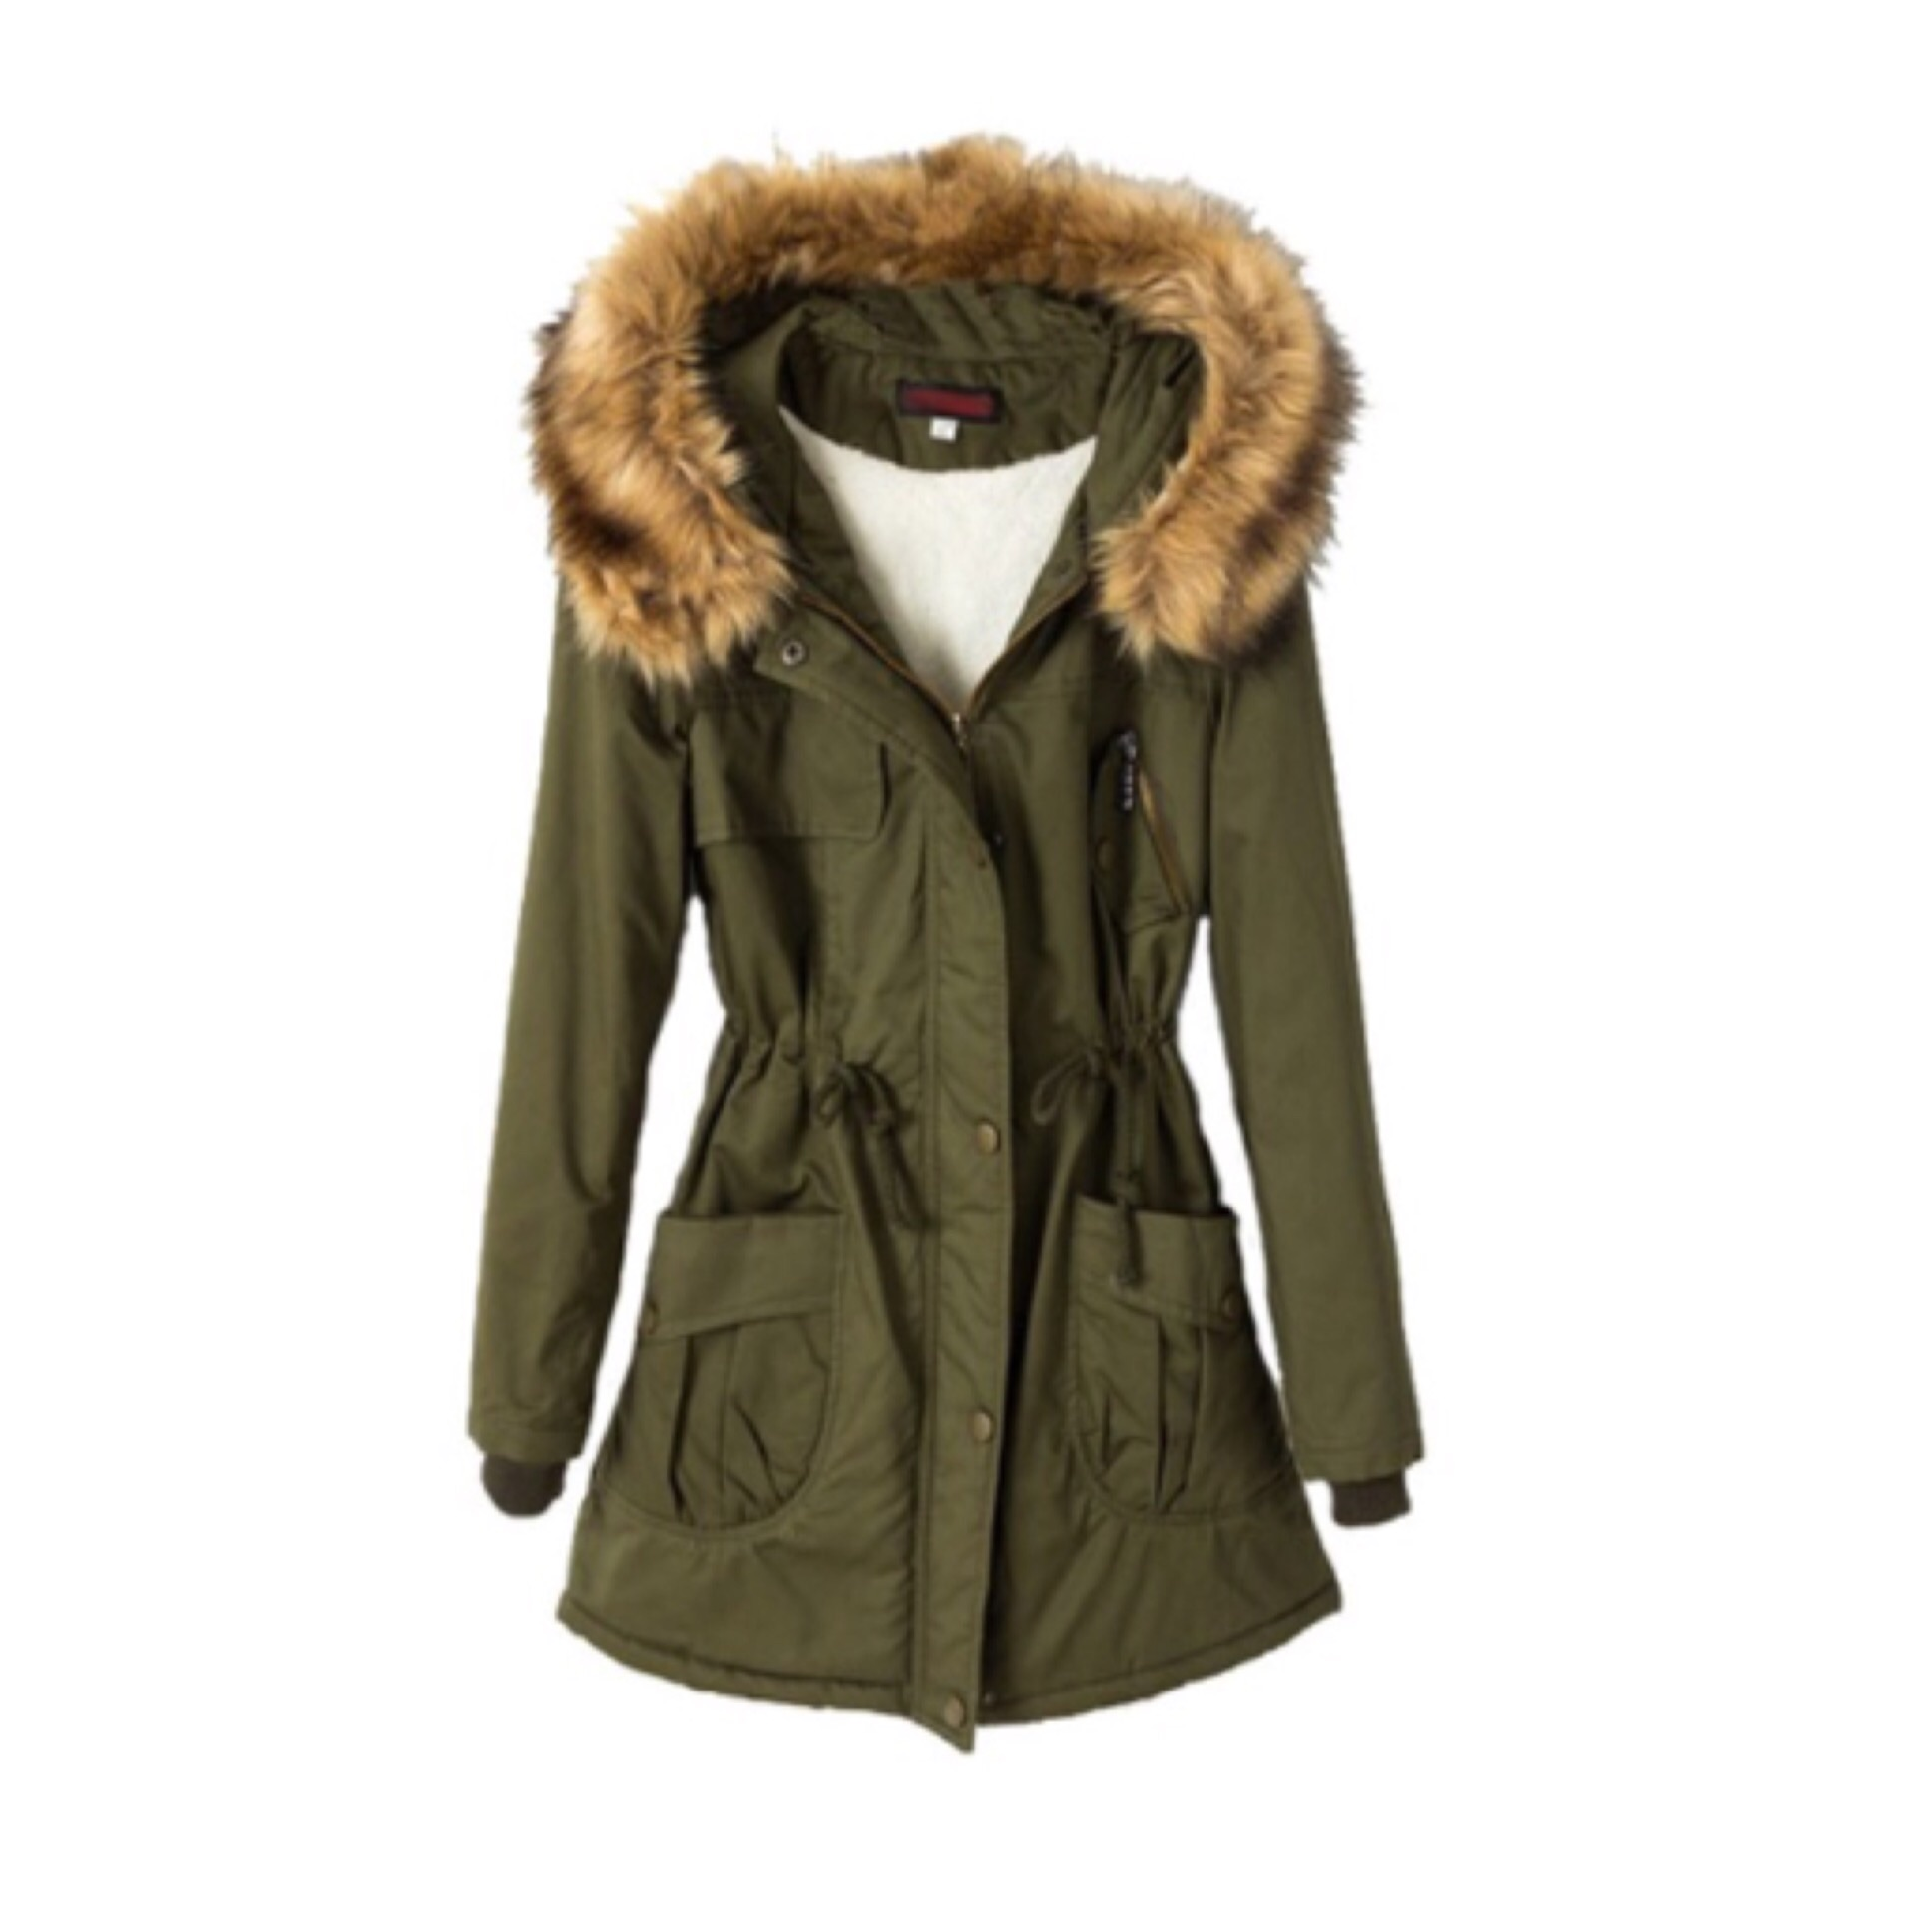 Green Hooded Parka Jacket | Jackets Review